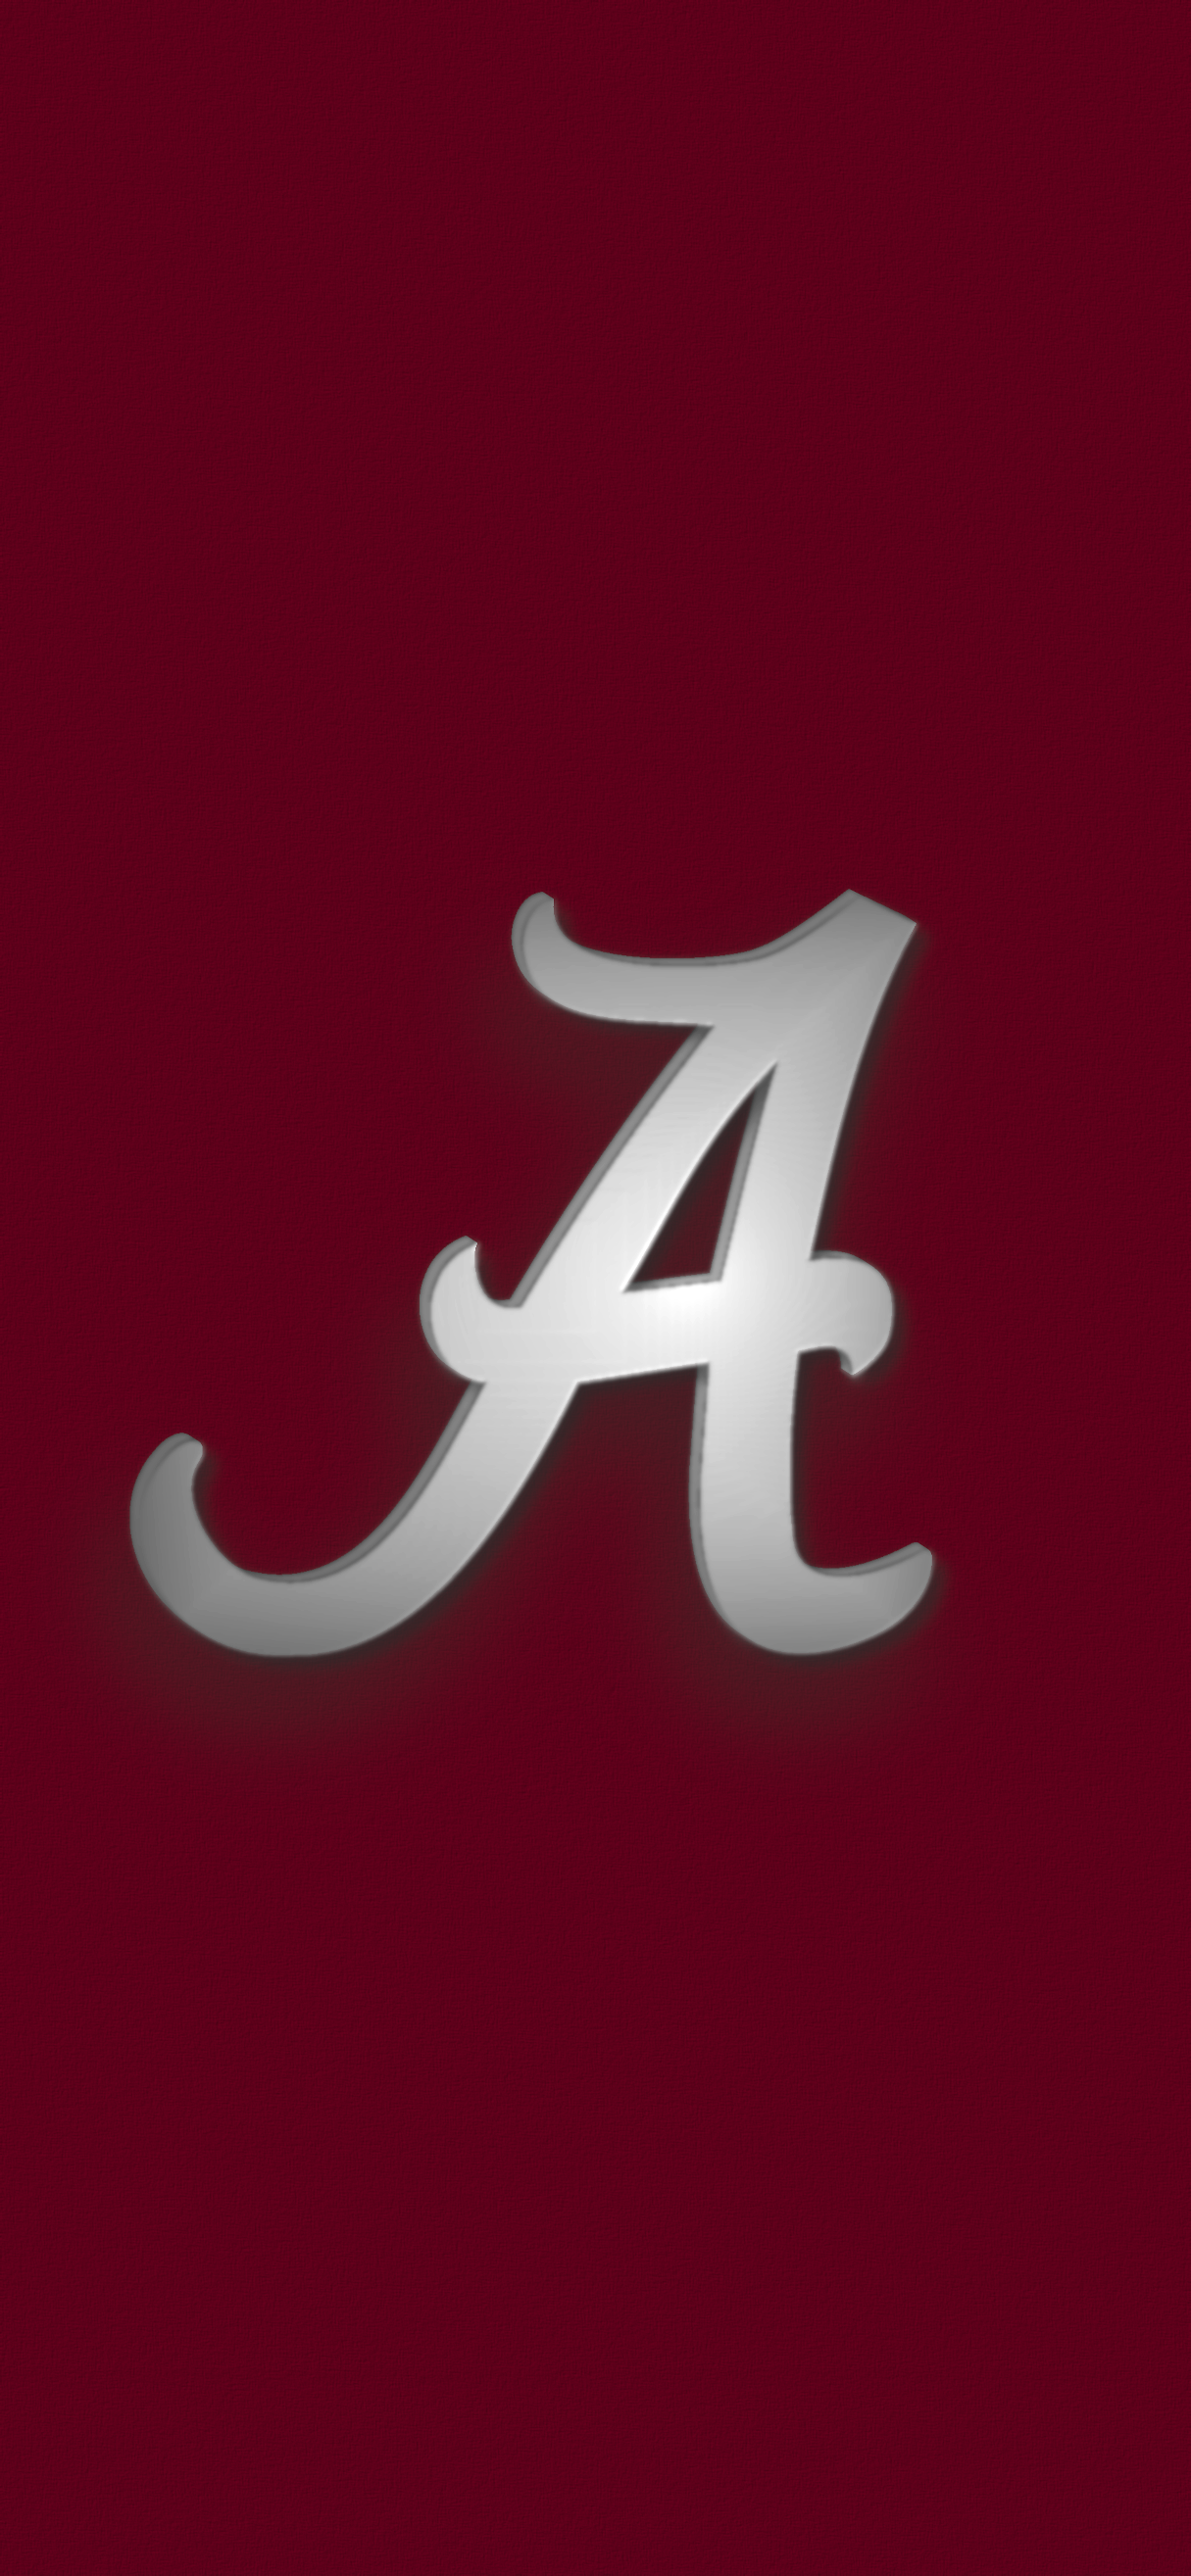 A Script 13 Alabama Wallpaper Alabama Crimson Tide Alabama Crimson Tide Football